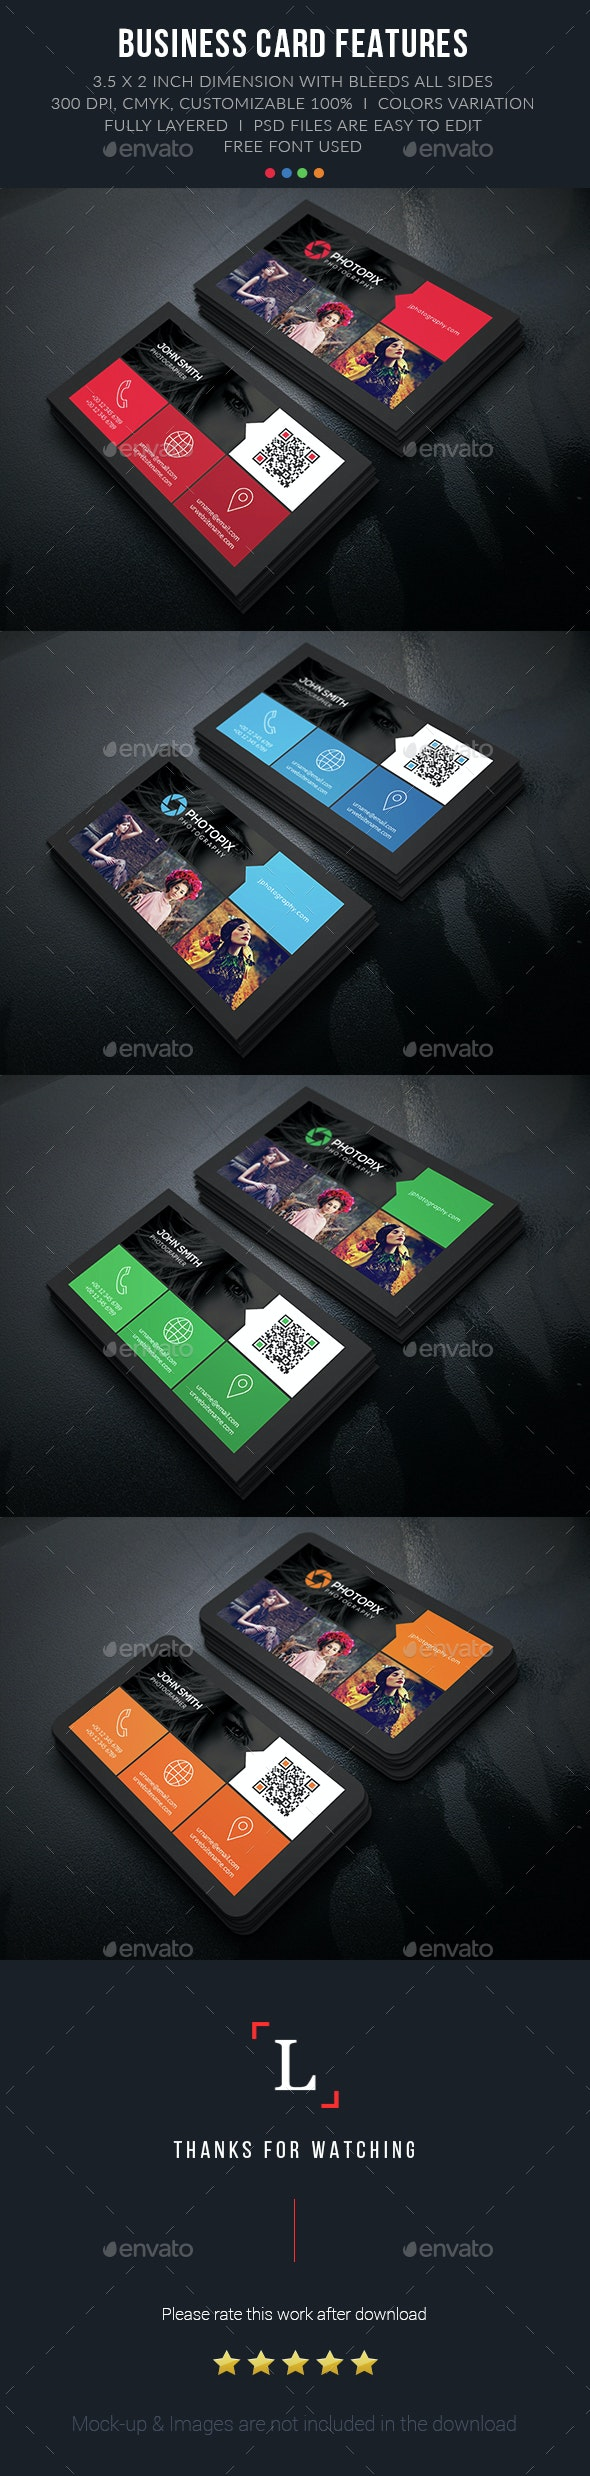 Color Photography Business Card - Business Cards Print Templates